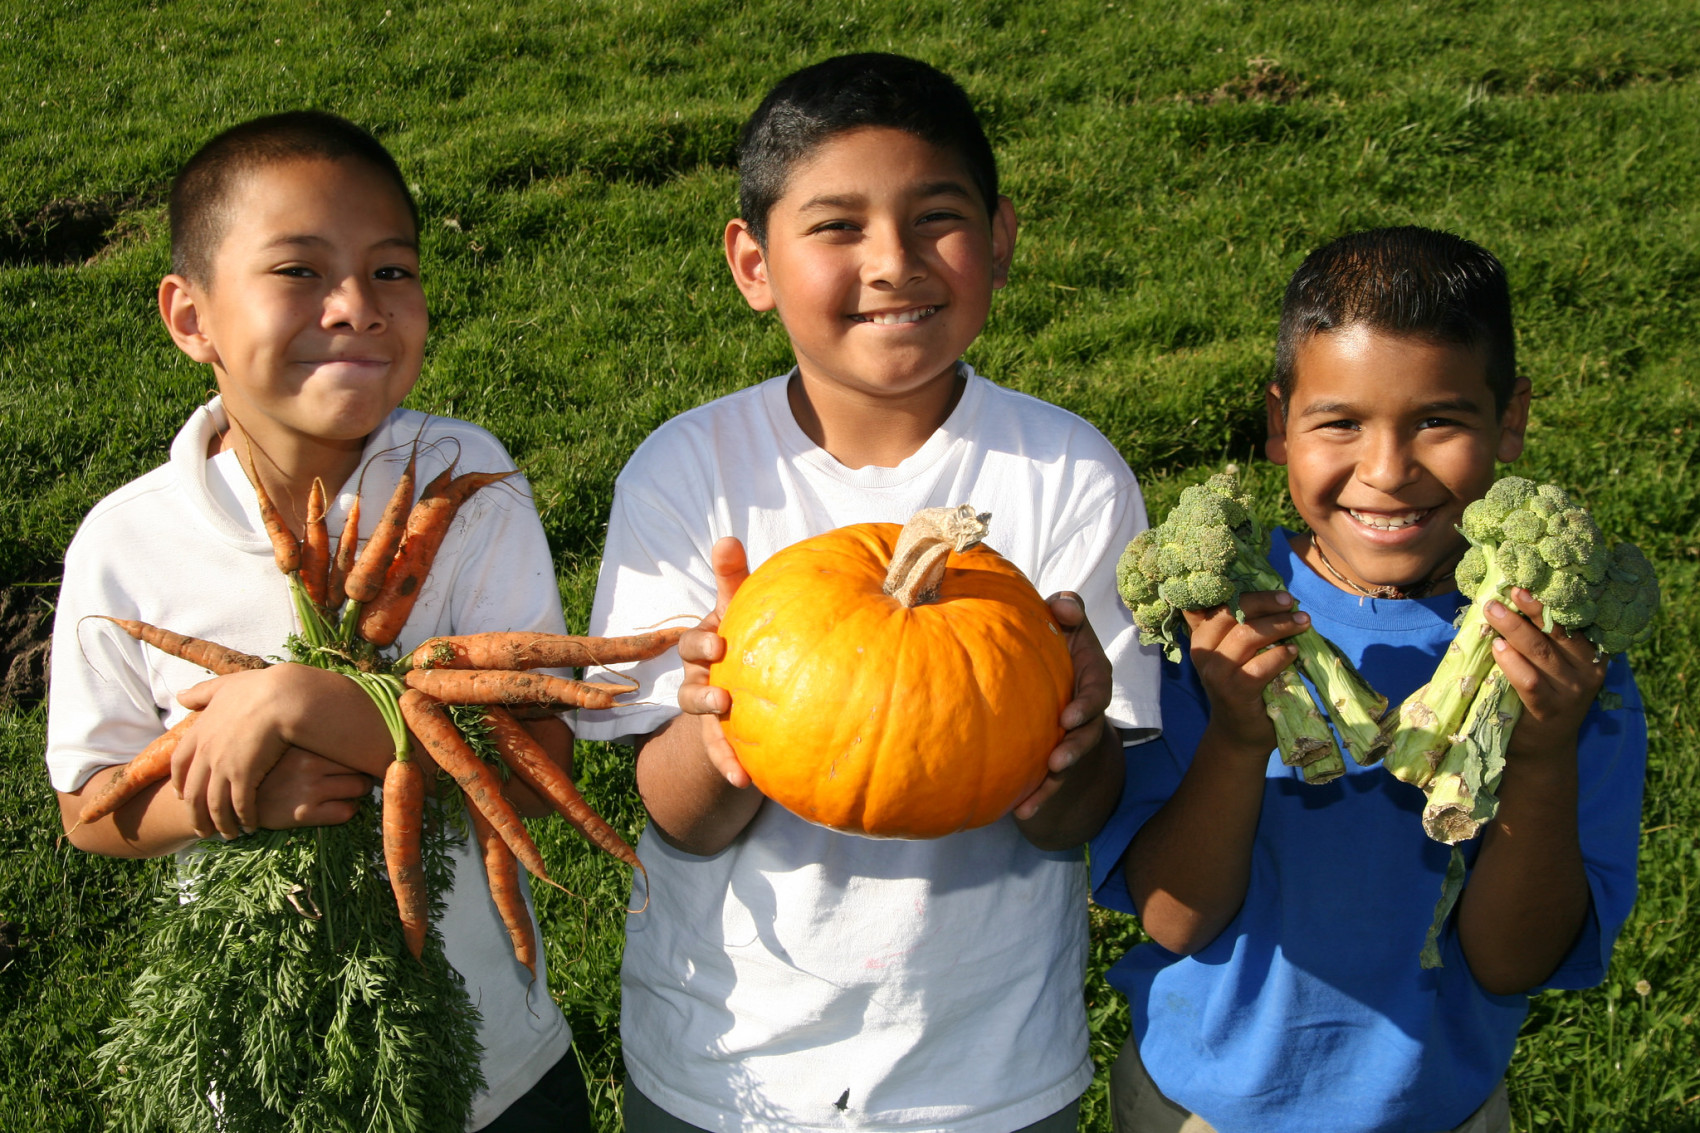 blooming classroom kids holding vegetables pumpkin carrots